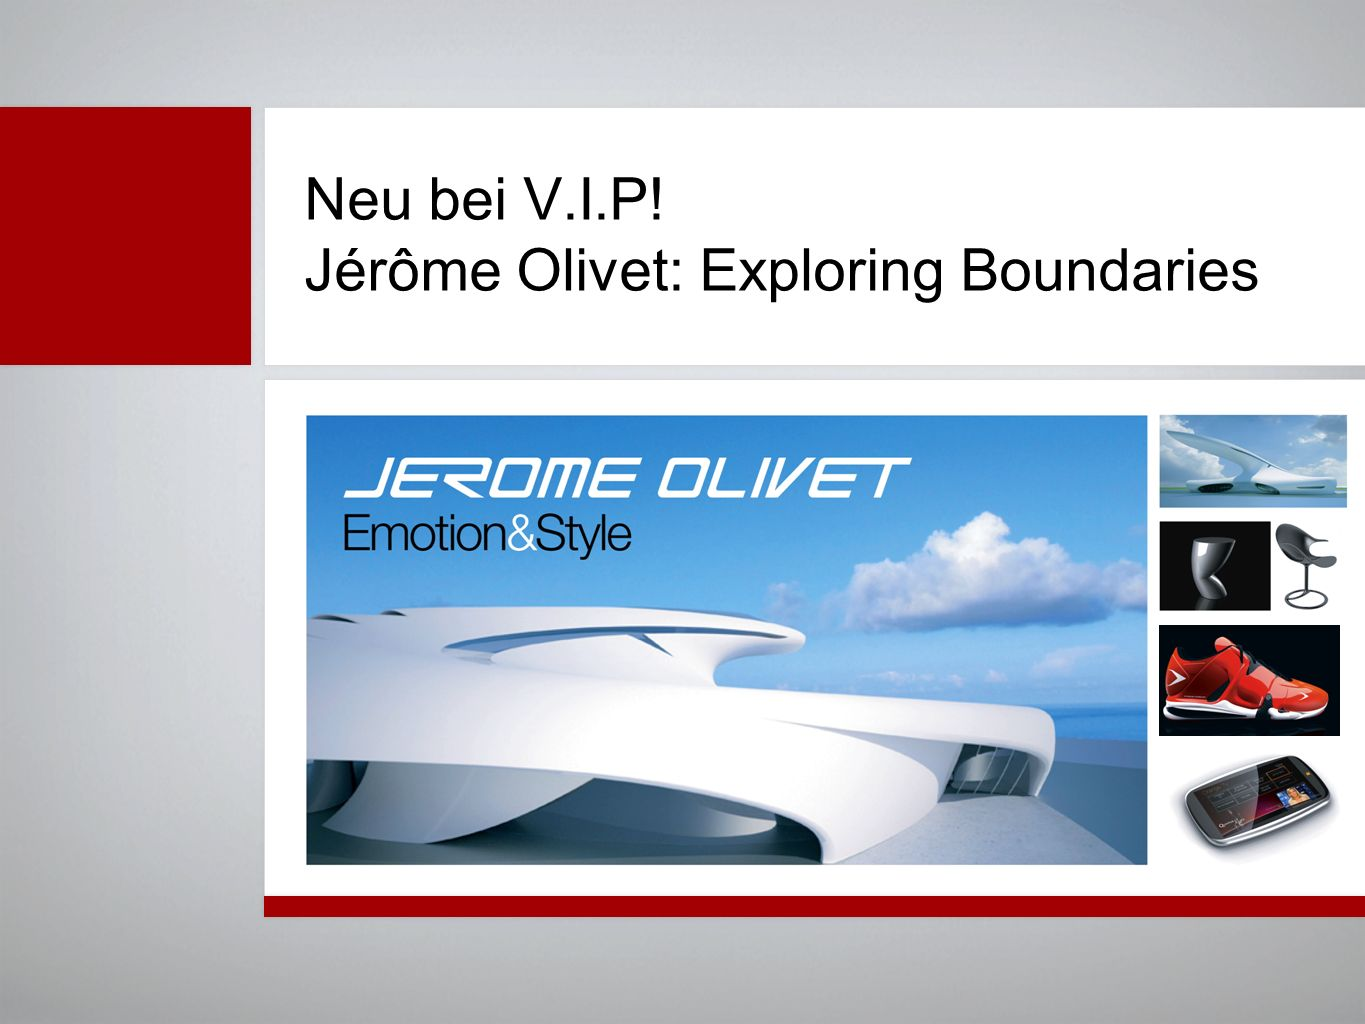 Neu bei V.I.P! Jérôme Olivet: Exploring Boundaries